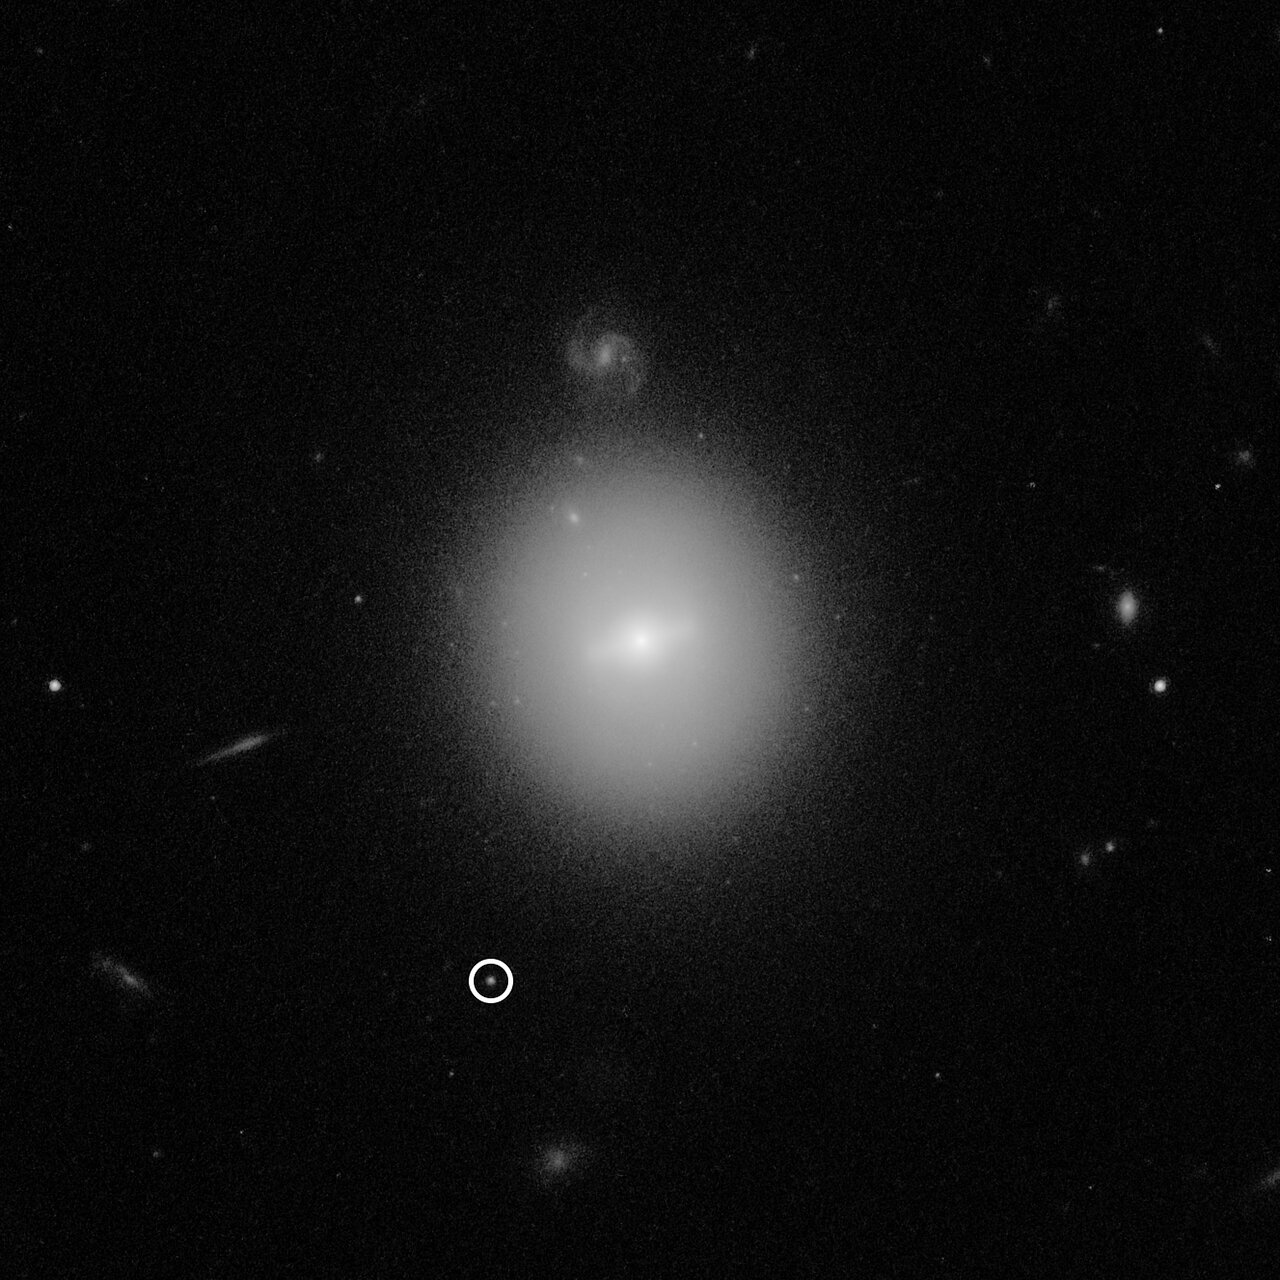 Hubble Observation of Intermediate-Mass Black Hole